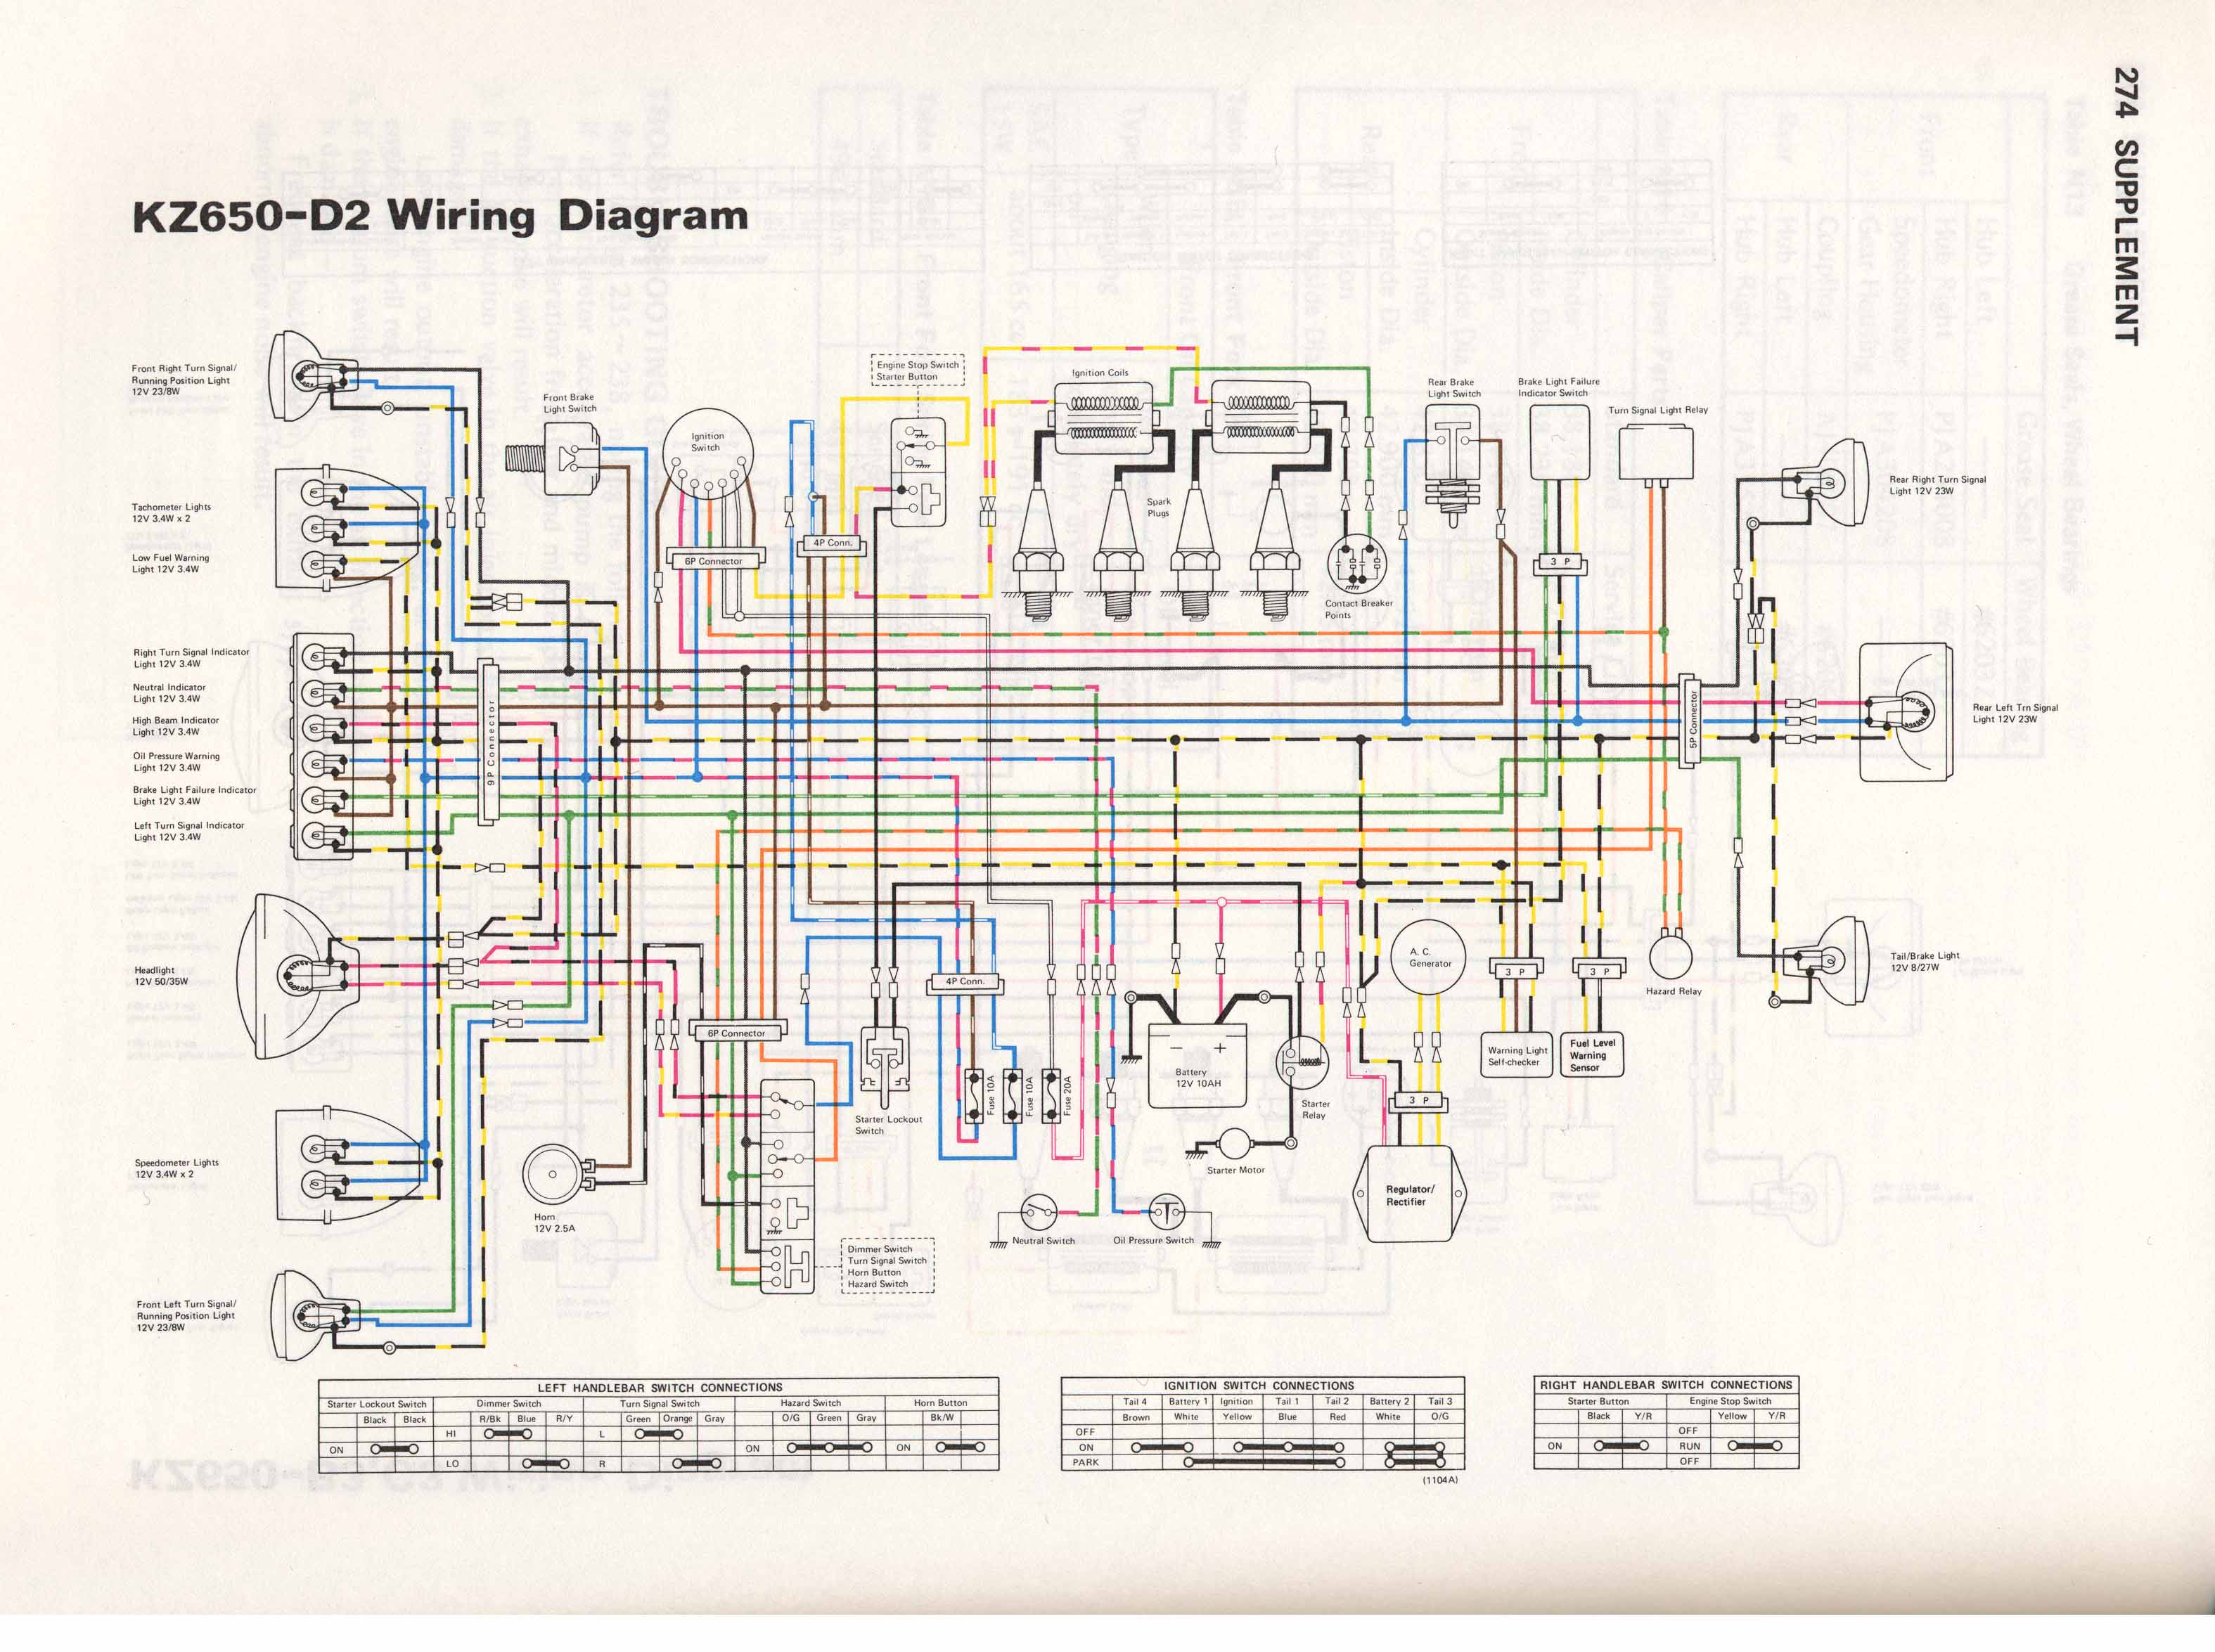 Yamaha Electric B Guitar Wiring Diagram Kz650info Diagrams Kz650 D2